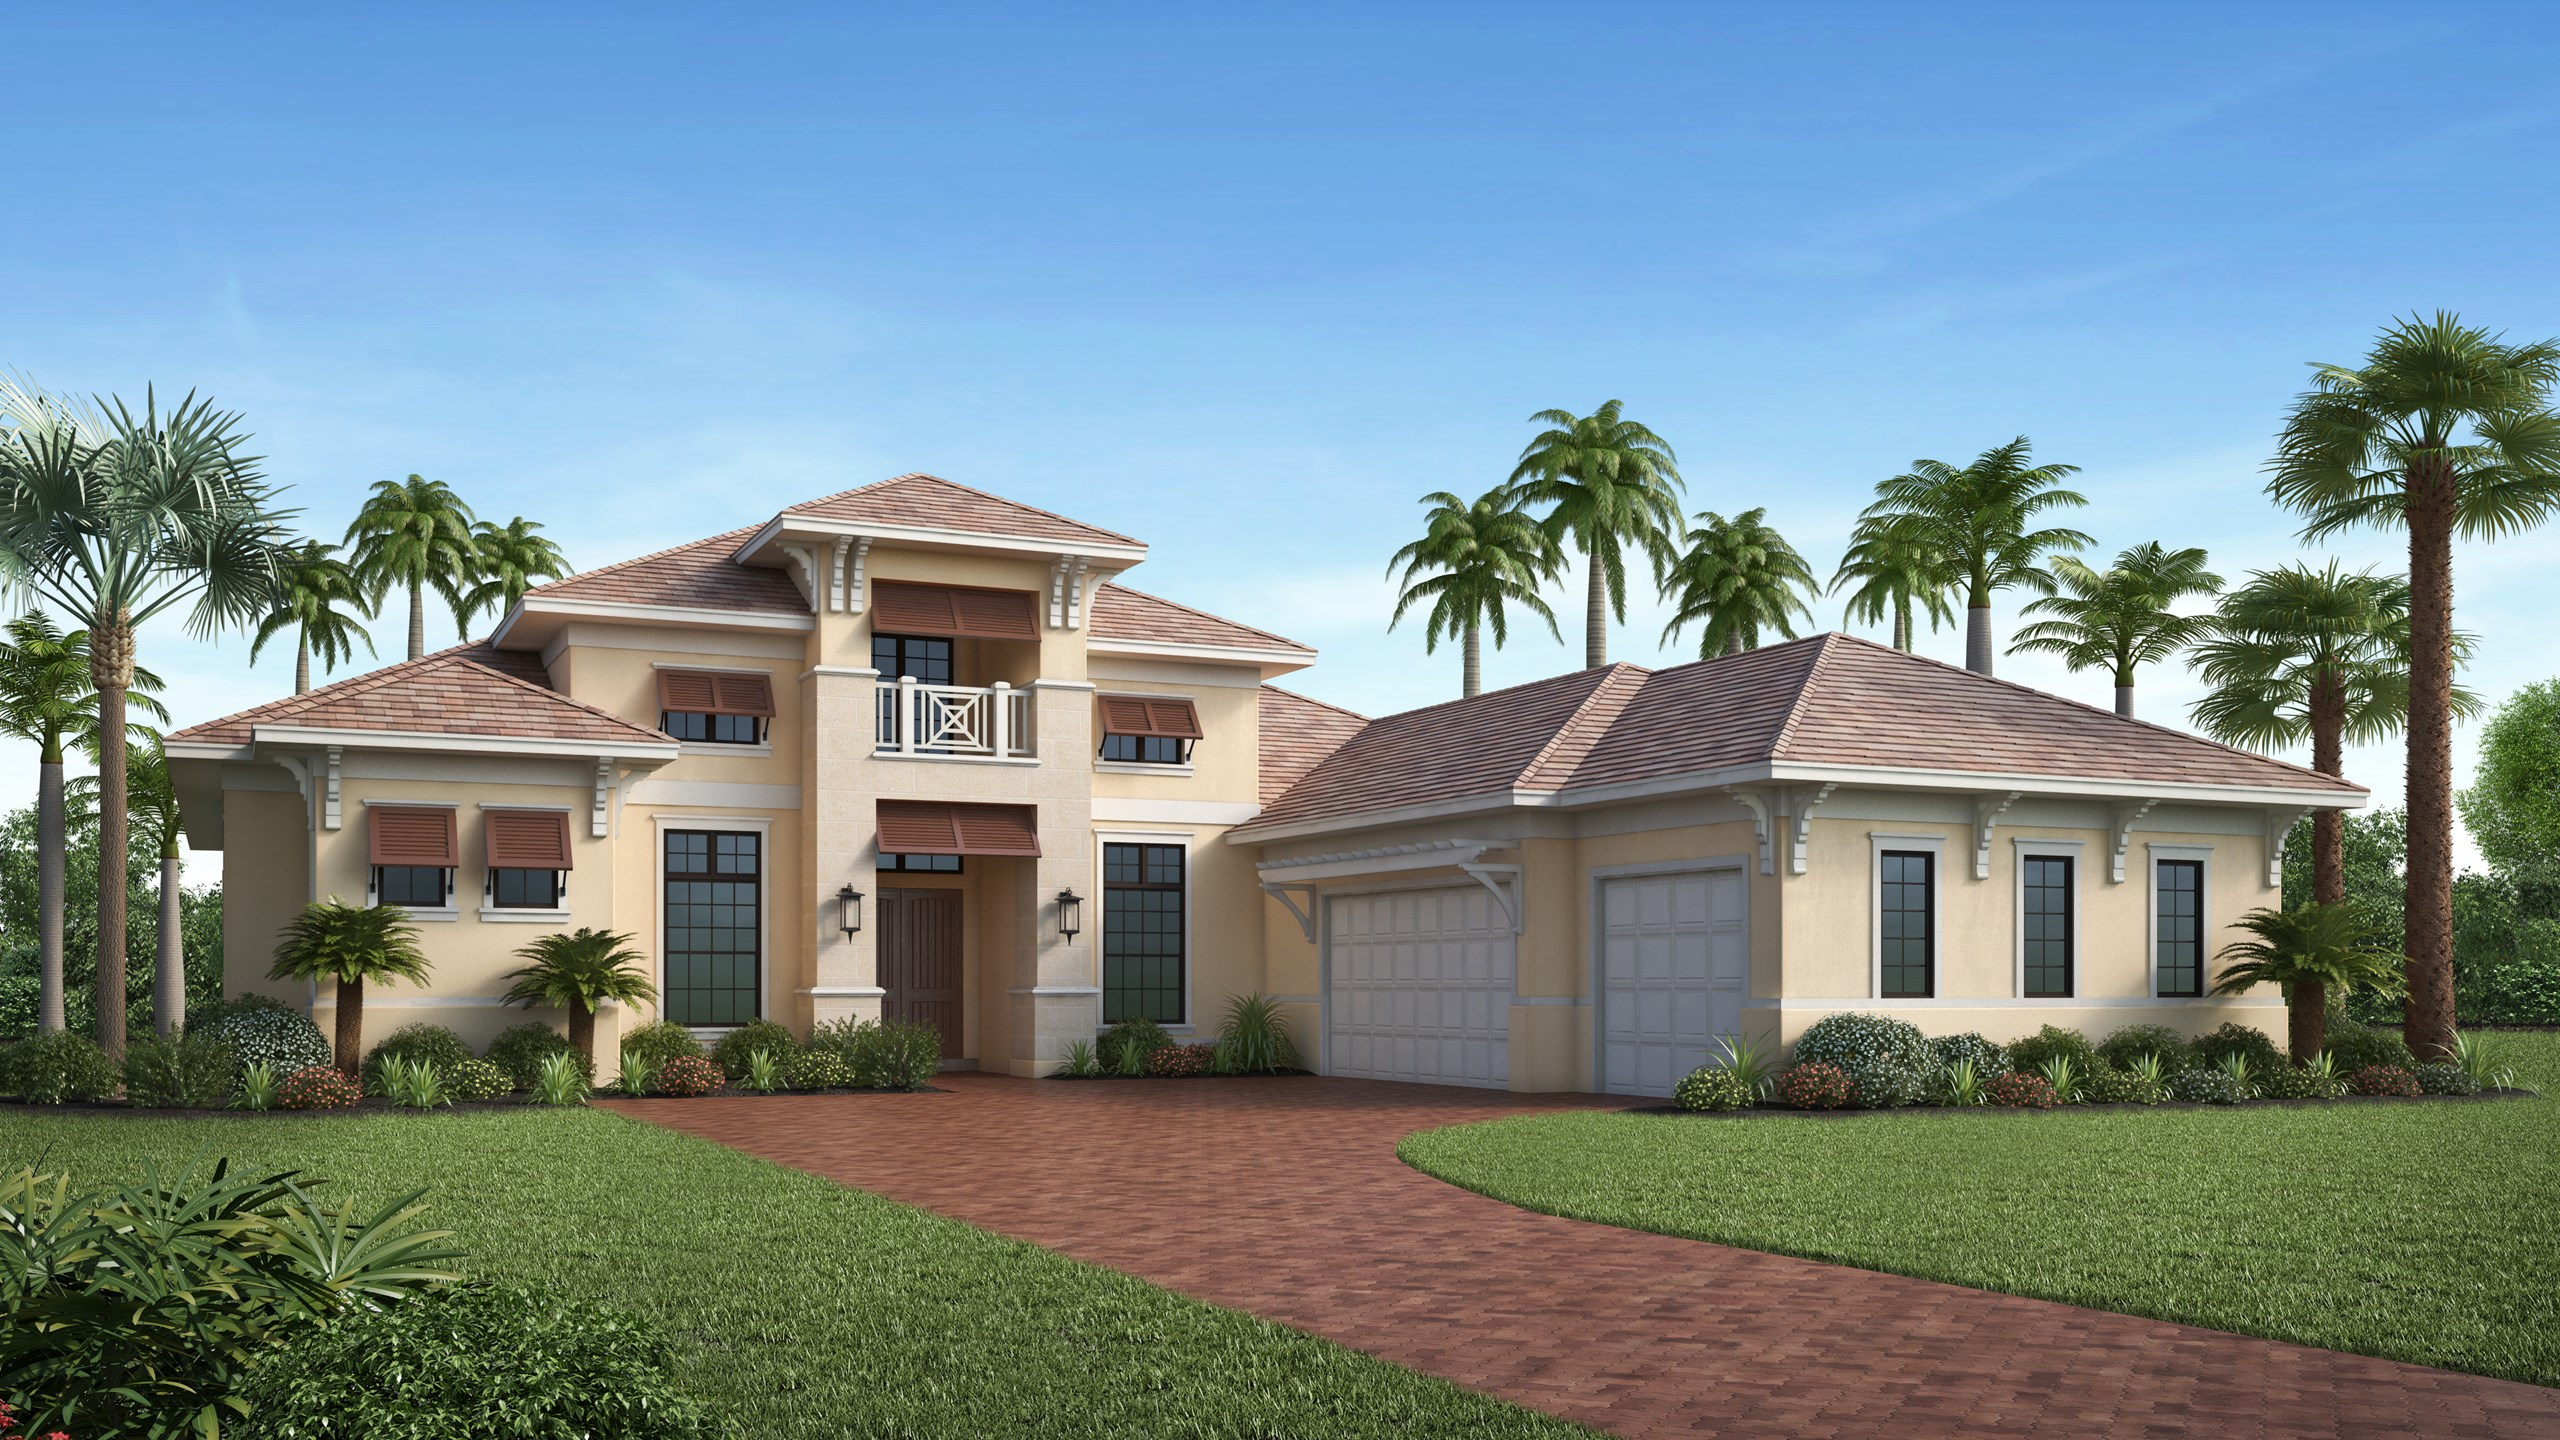 Lakewood Ranch Florida Million Dollar New Homes Community